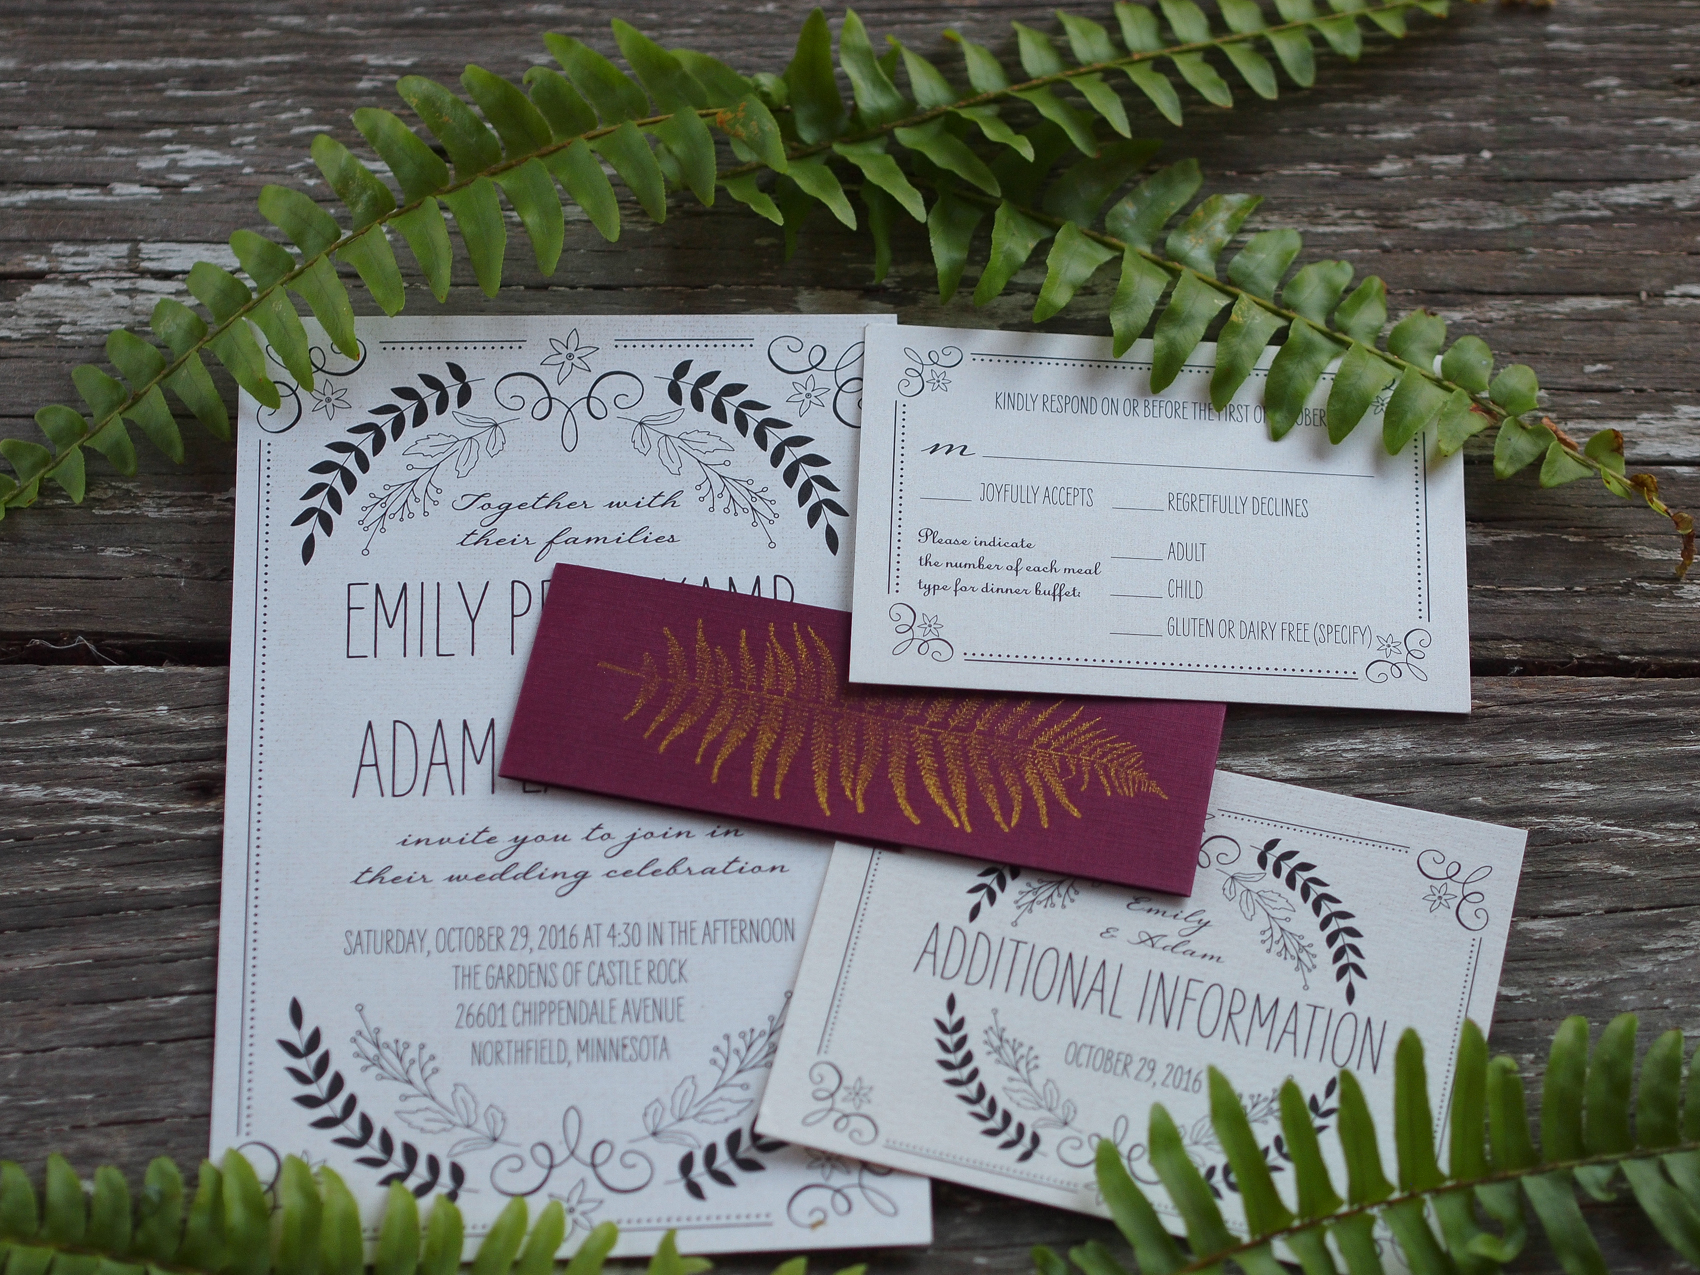 Wedding Invitation Edicate: The Gardens Of Castle Rock